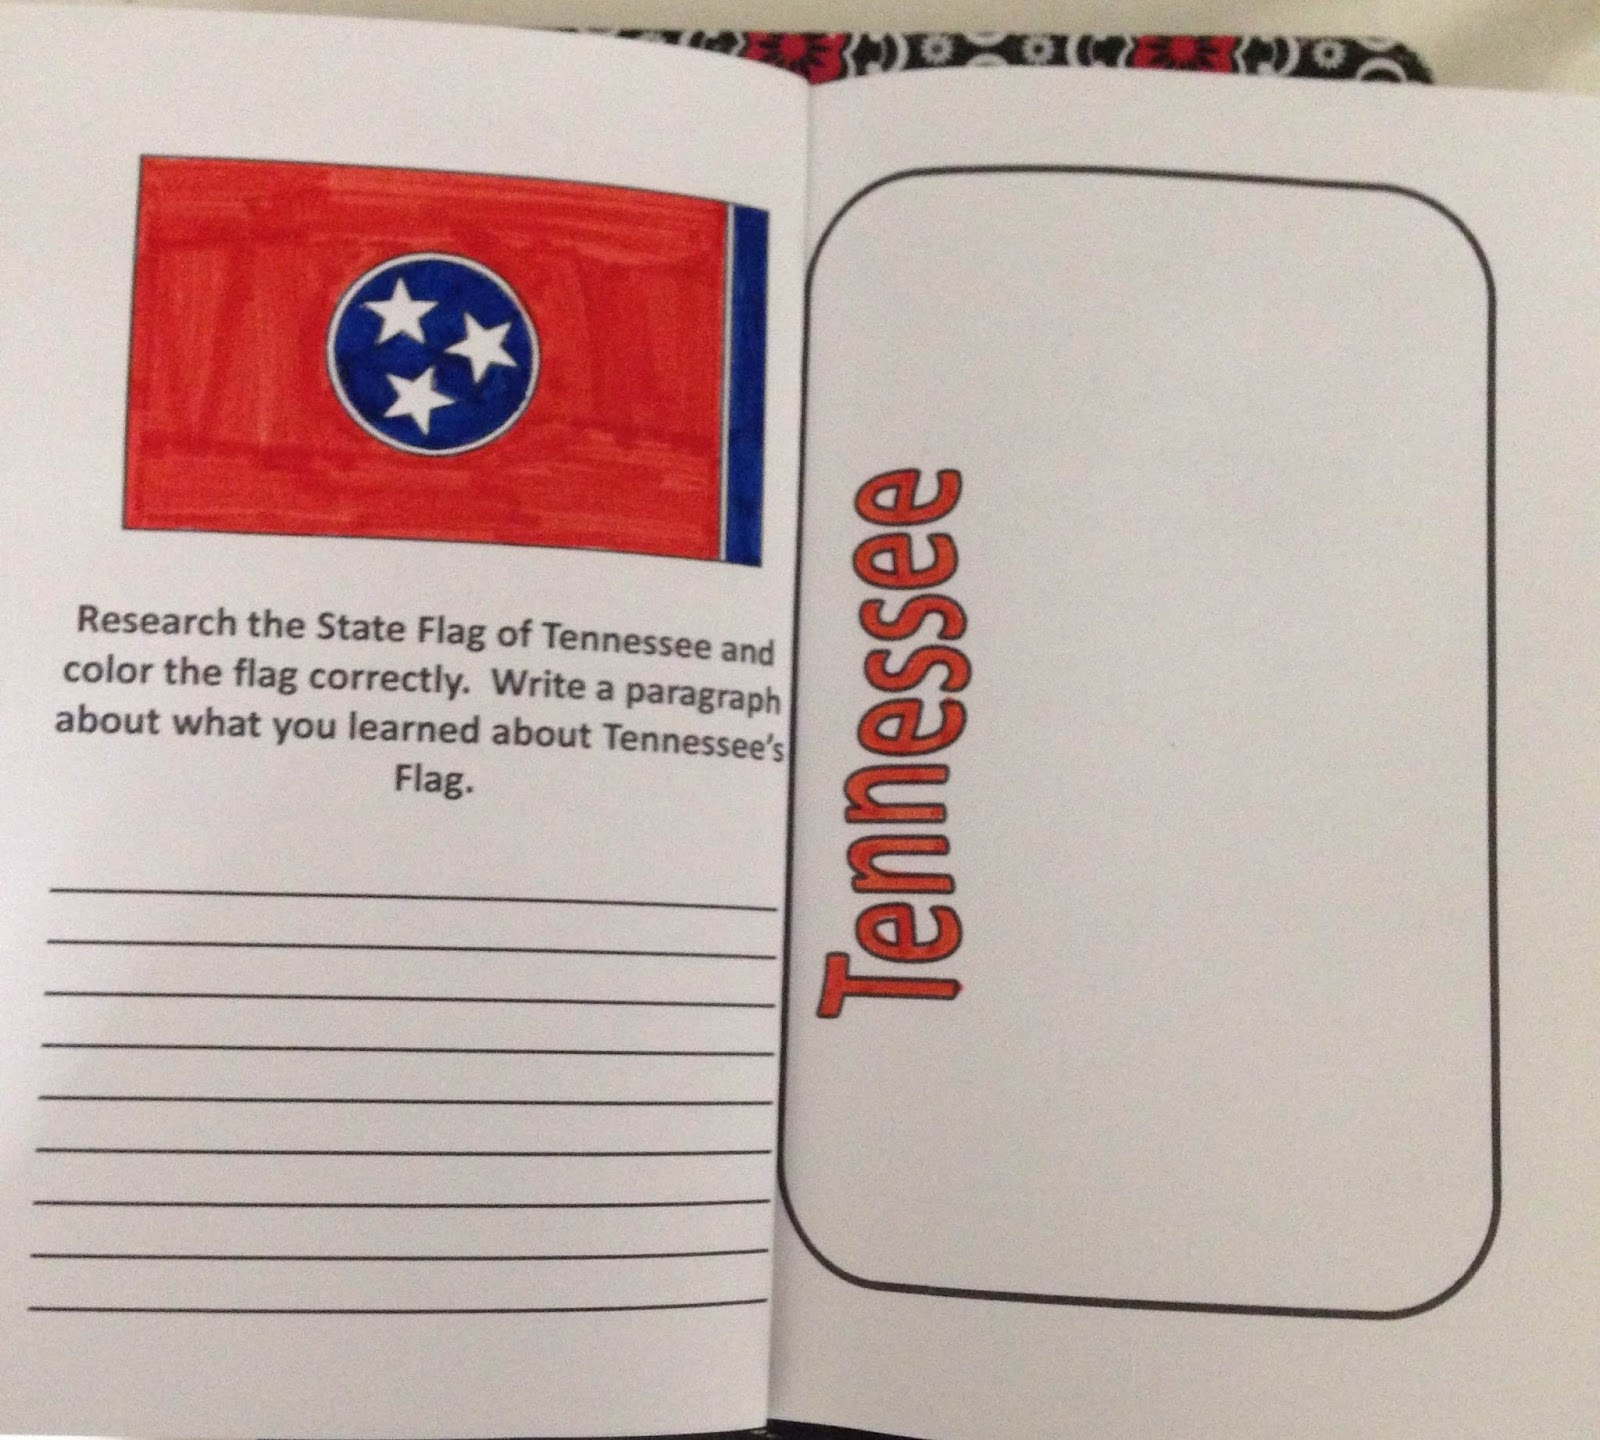 after the license plate they must write about each item they placed on the license plate this will fill the next pages one page per item